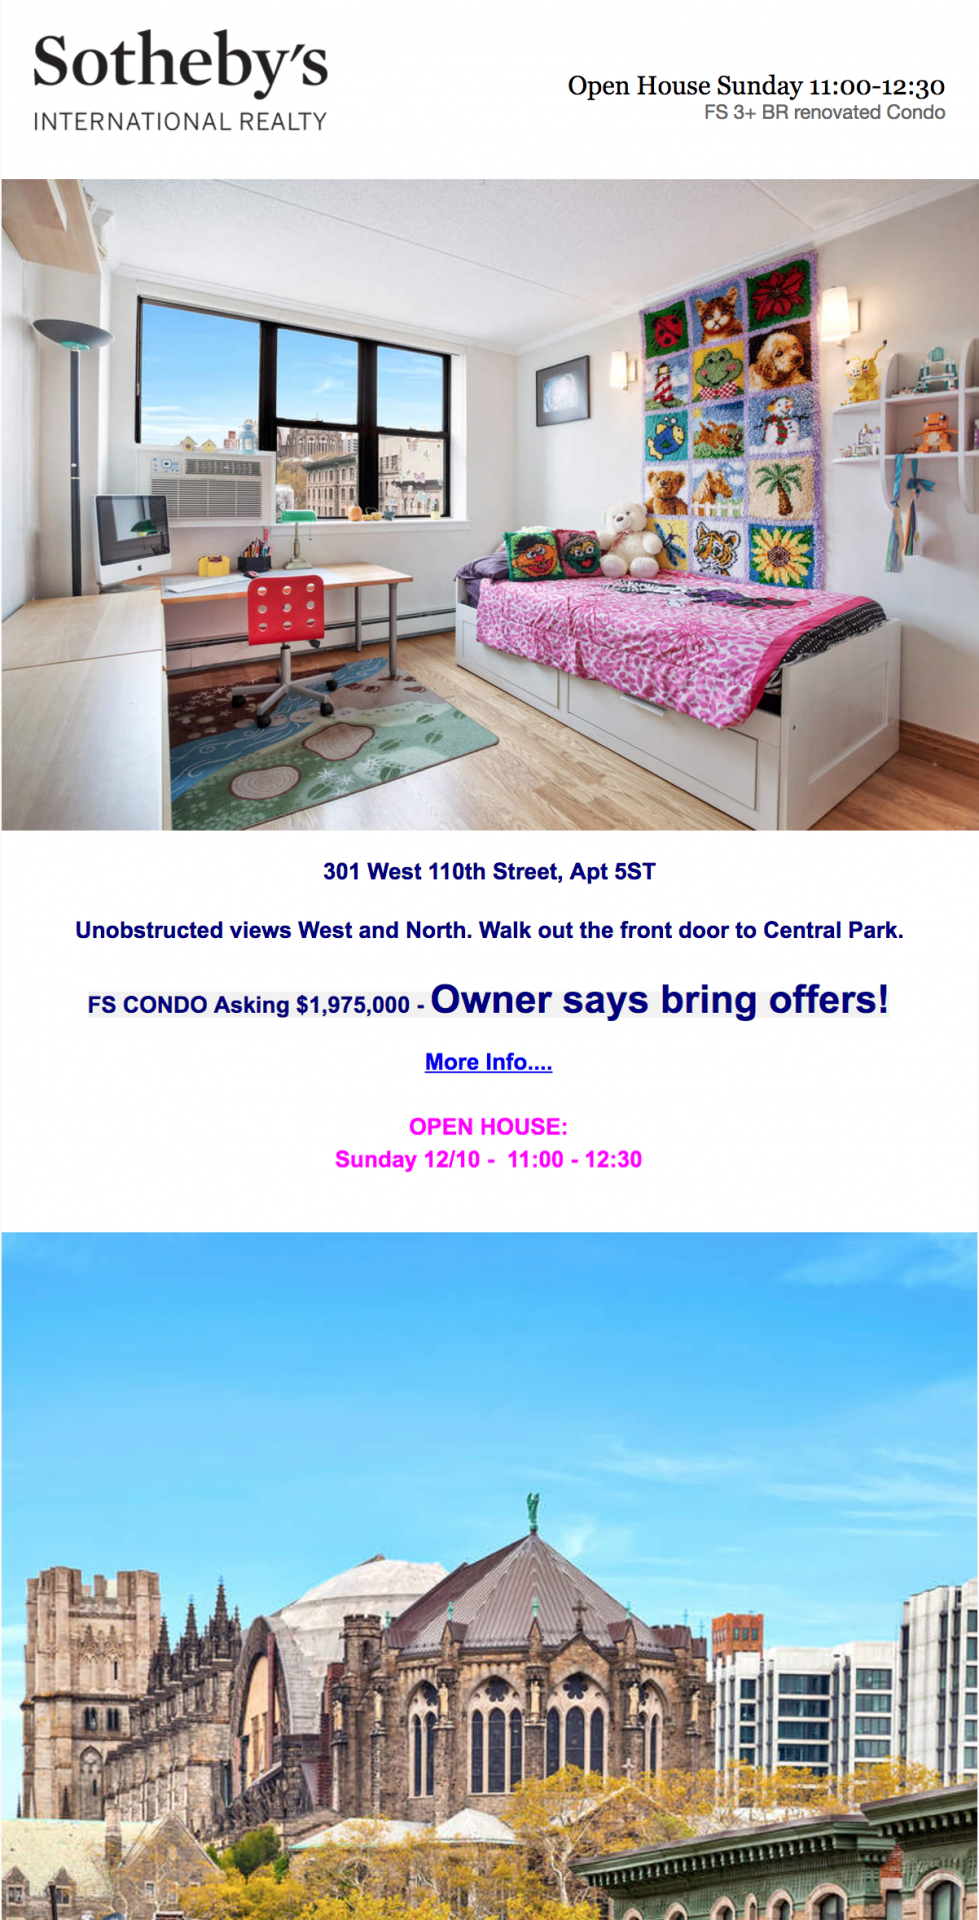 Sotheby's International Realty real estate newsletter example